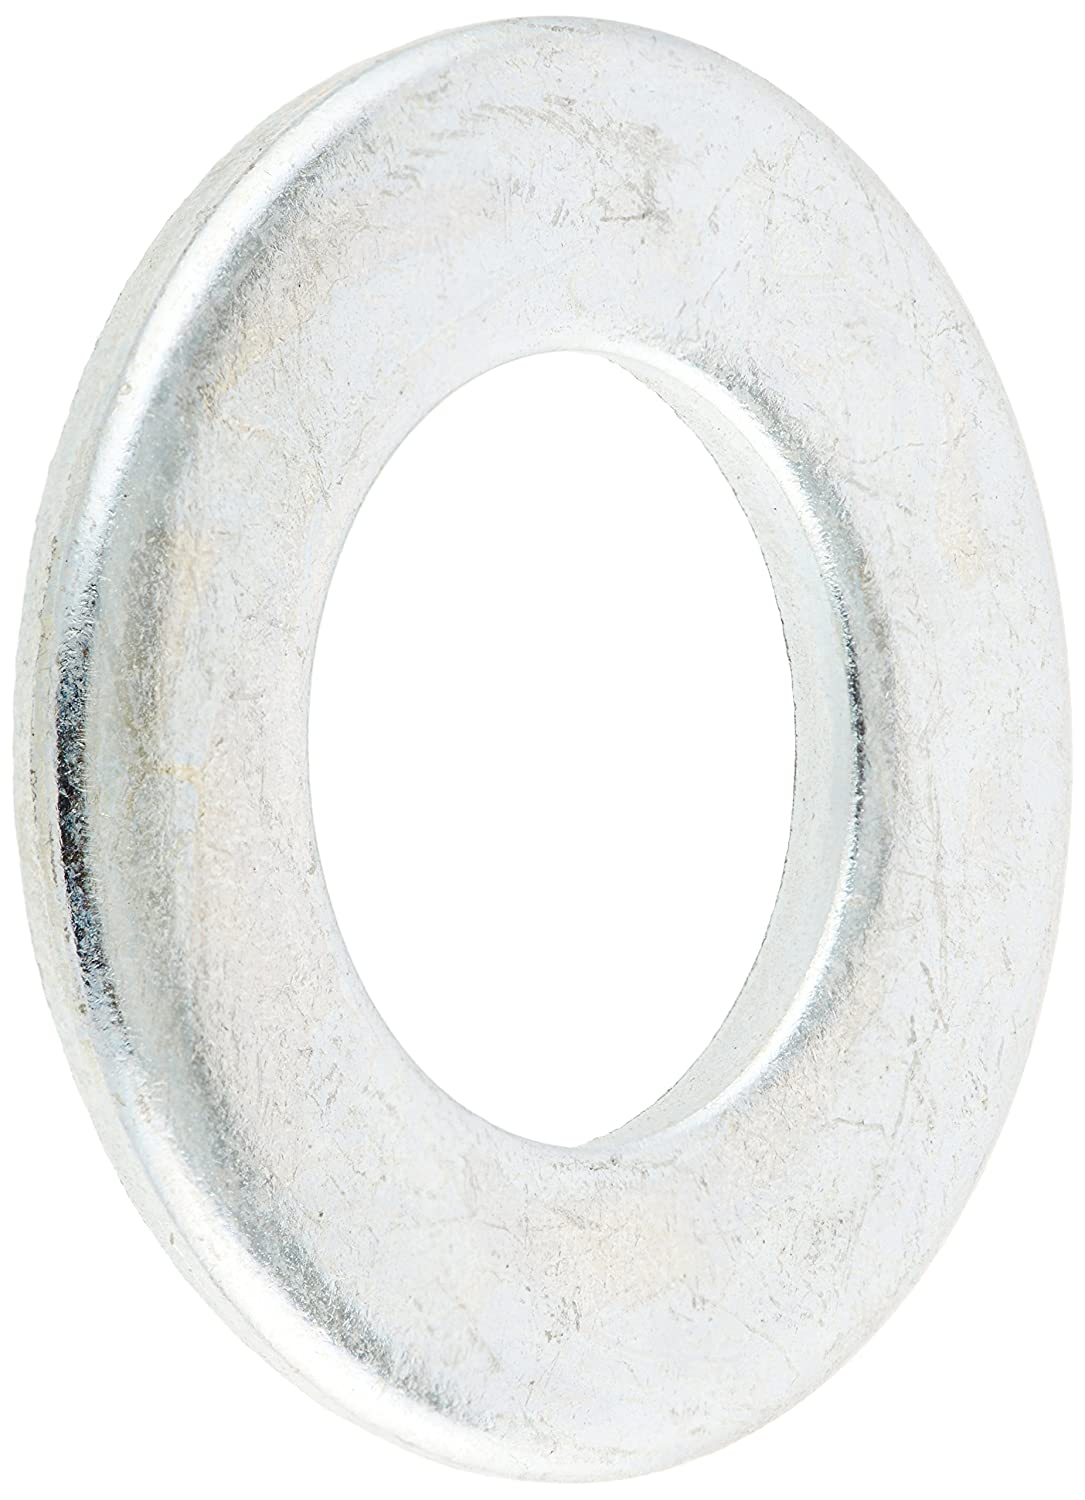 The Hillman Group 280072 7 8 Inch Flat Washer 10 Pack